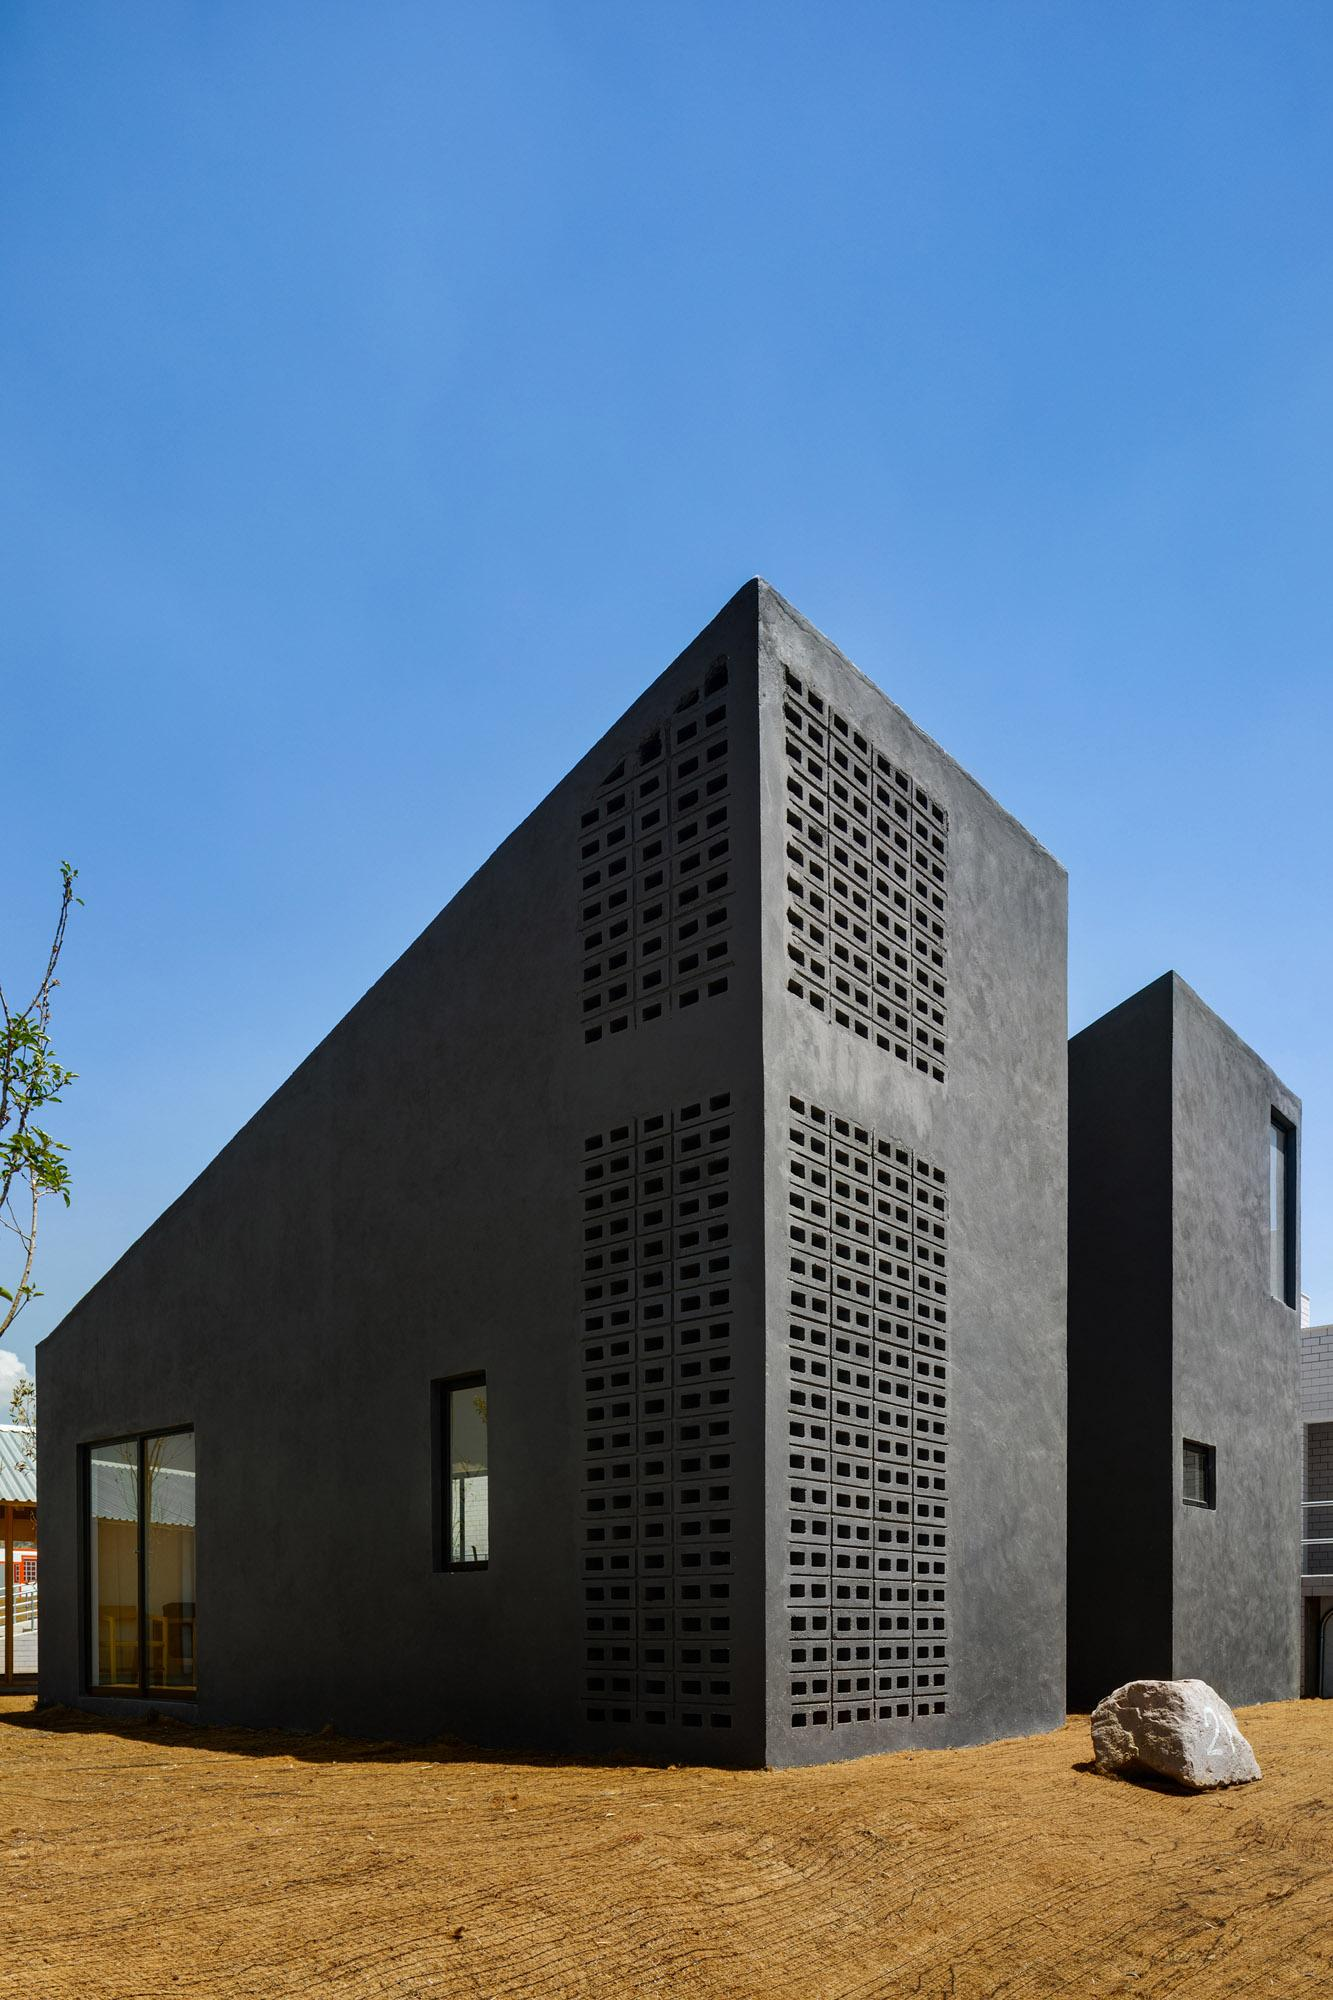 the black volume of Casa productive by Fernanda Canales